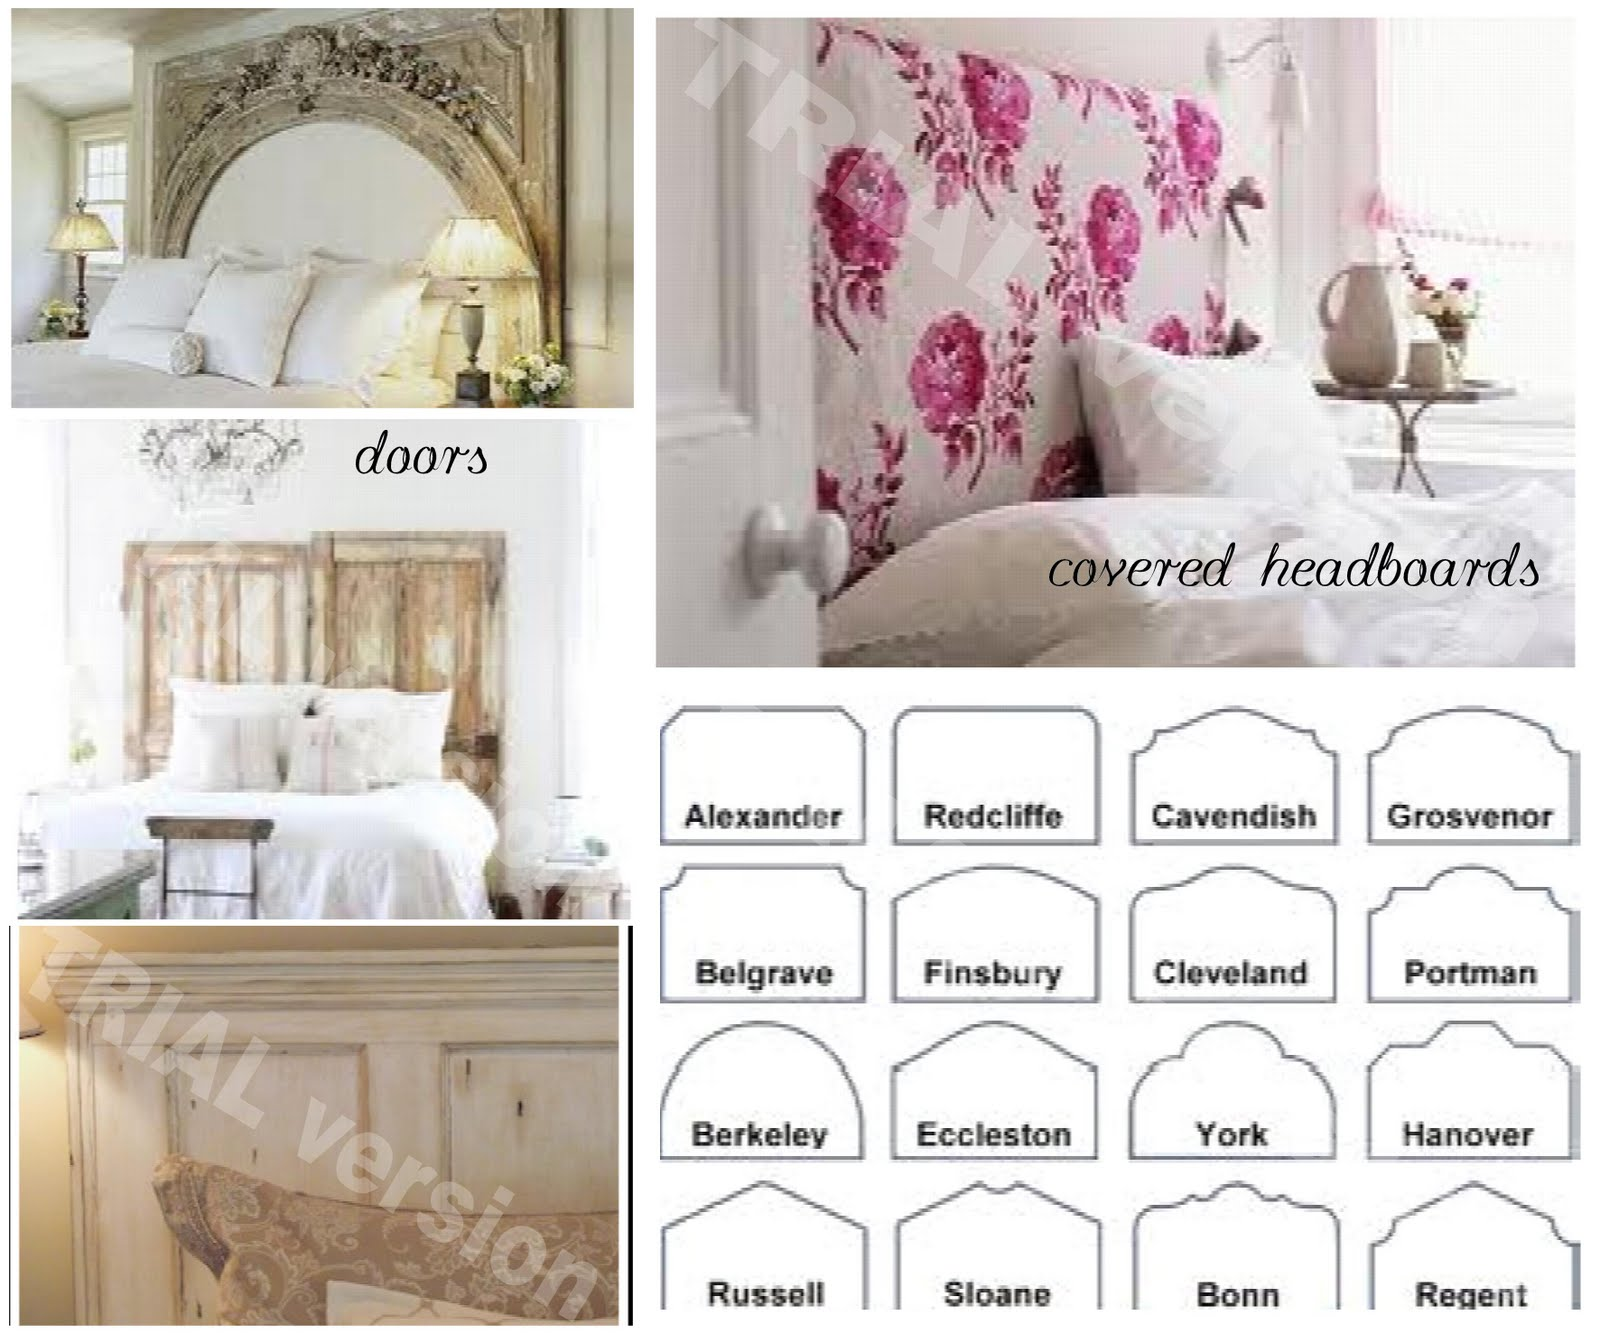 chic fascinating of wood fascinati bedroom including sheets lime curve leather headboards design rectangular headboard floral girl using curved white images ideas bench valance plain image velvet tufted shabby ottoman and pink light curtain decoration green casual bed heavenly